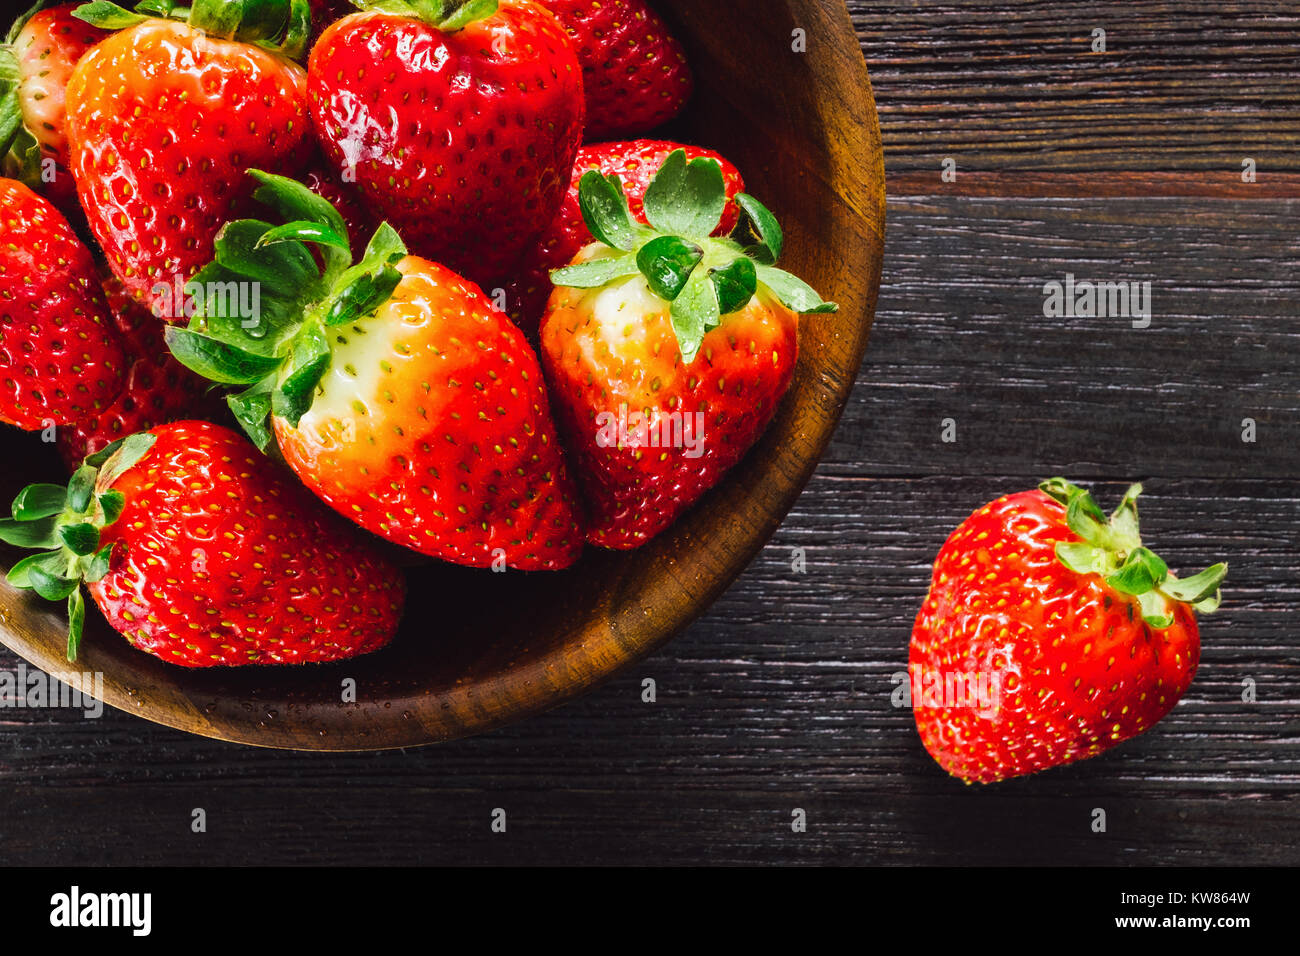 Bowl of Fresh Strawberries on Dark Table - Stock Image